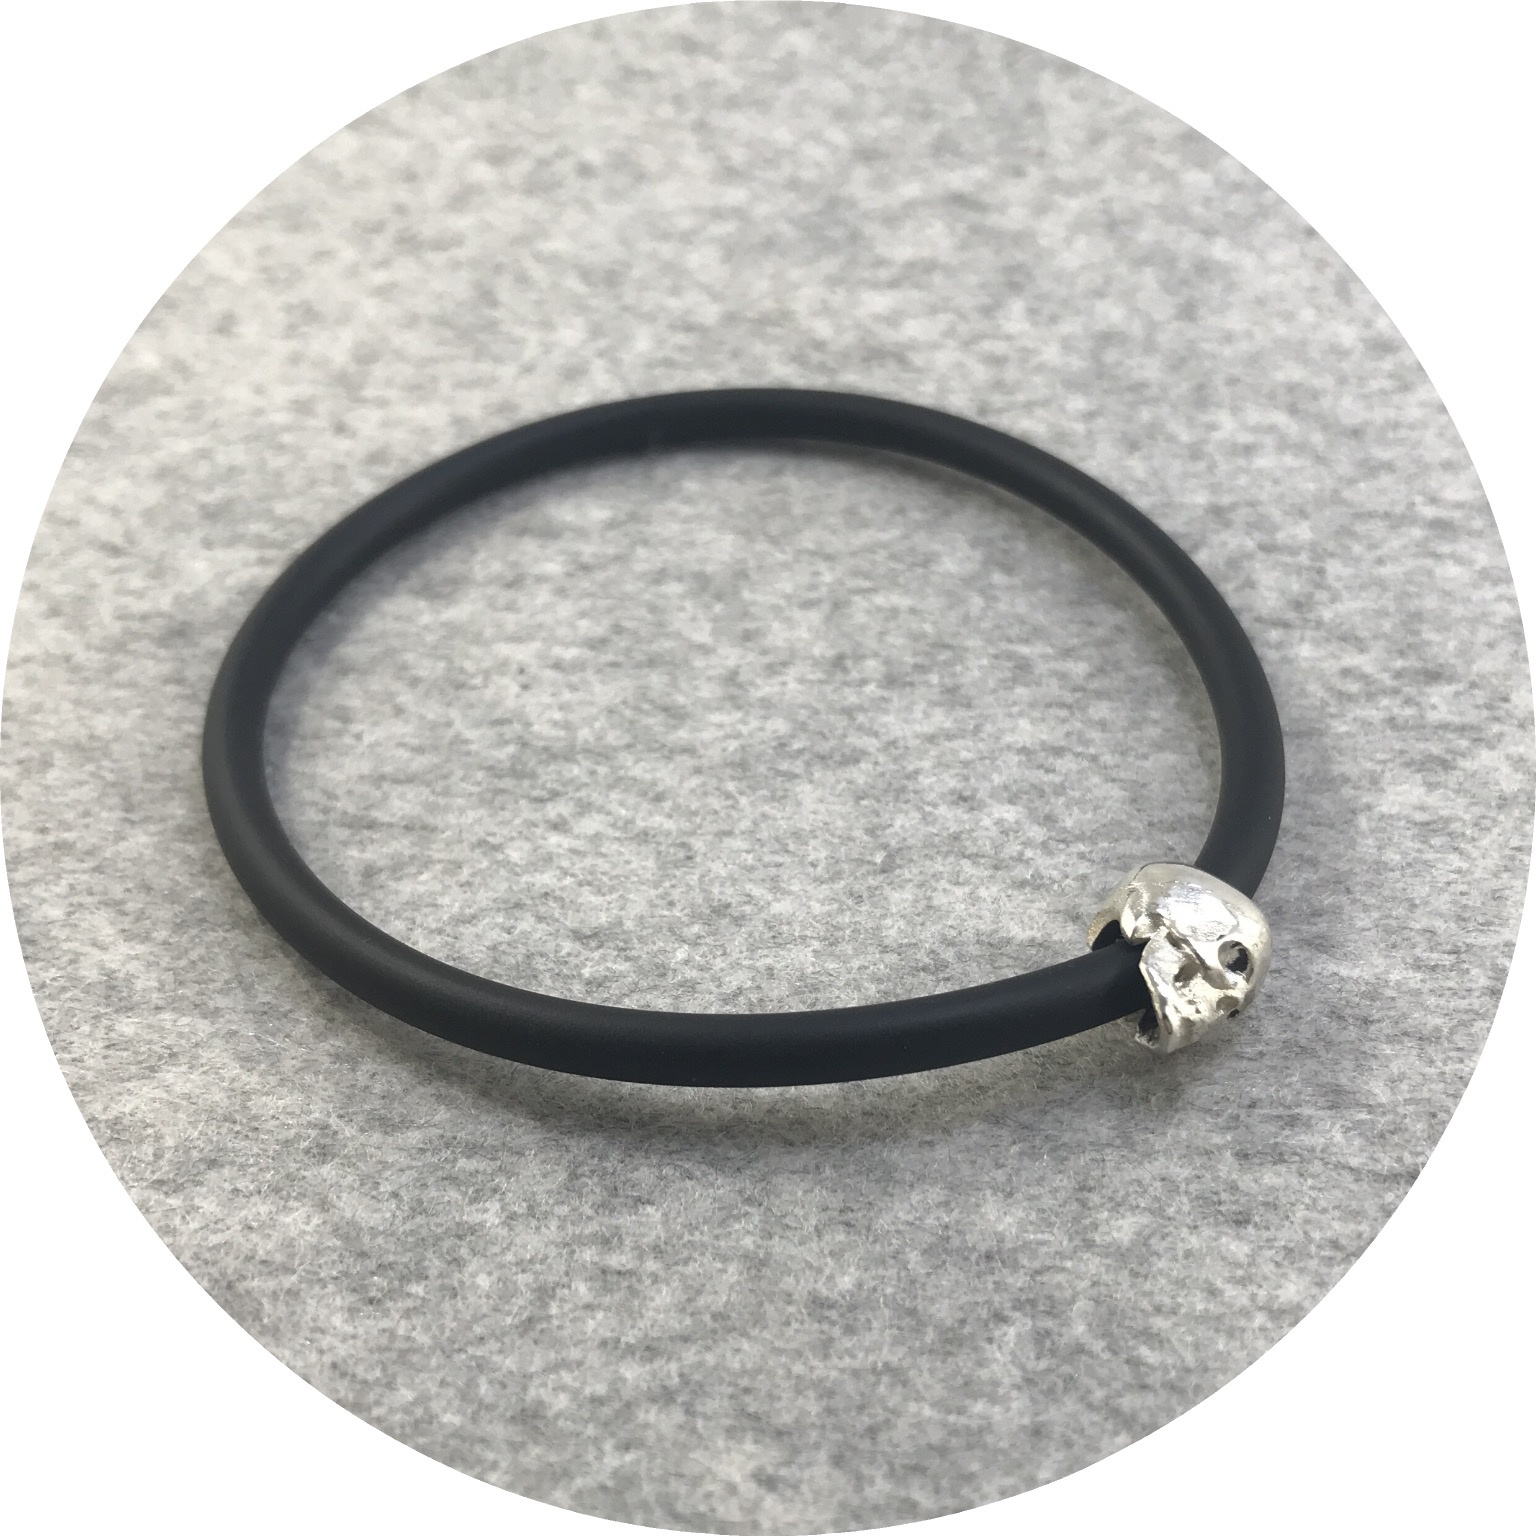 Fin Mahon - One Skull Bracelet in Sterling Silver and Neoprene